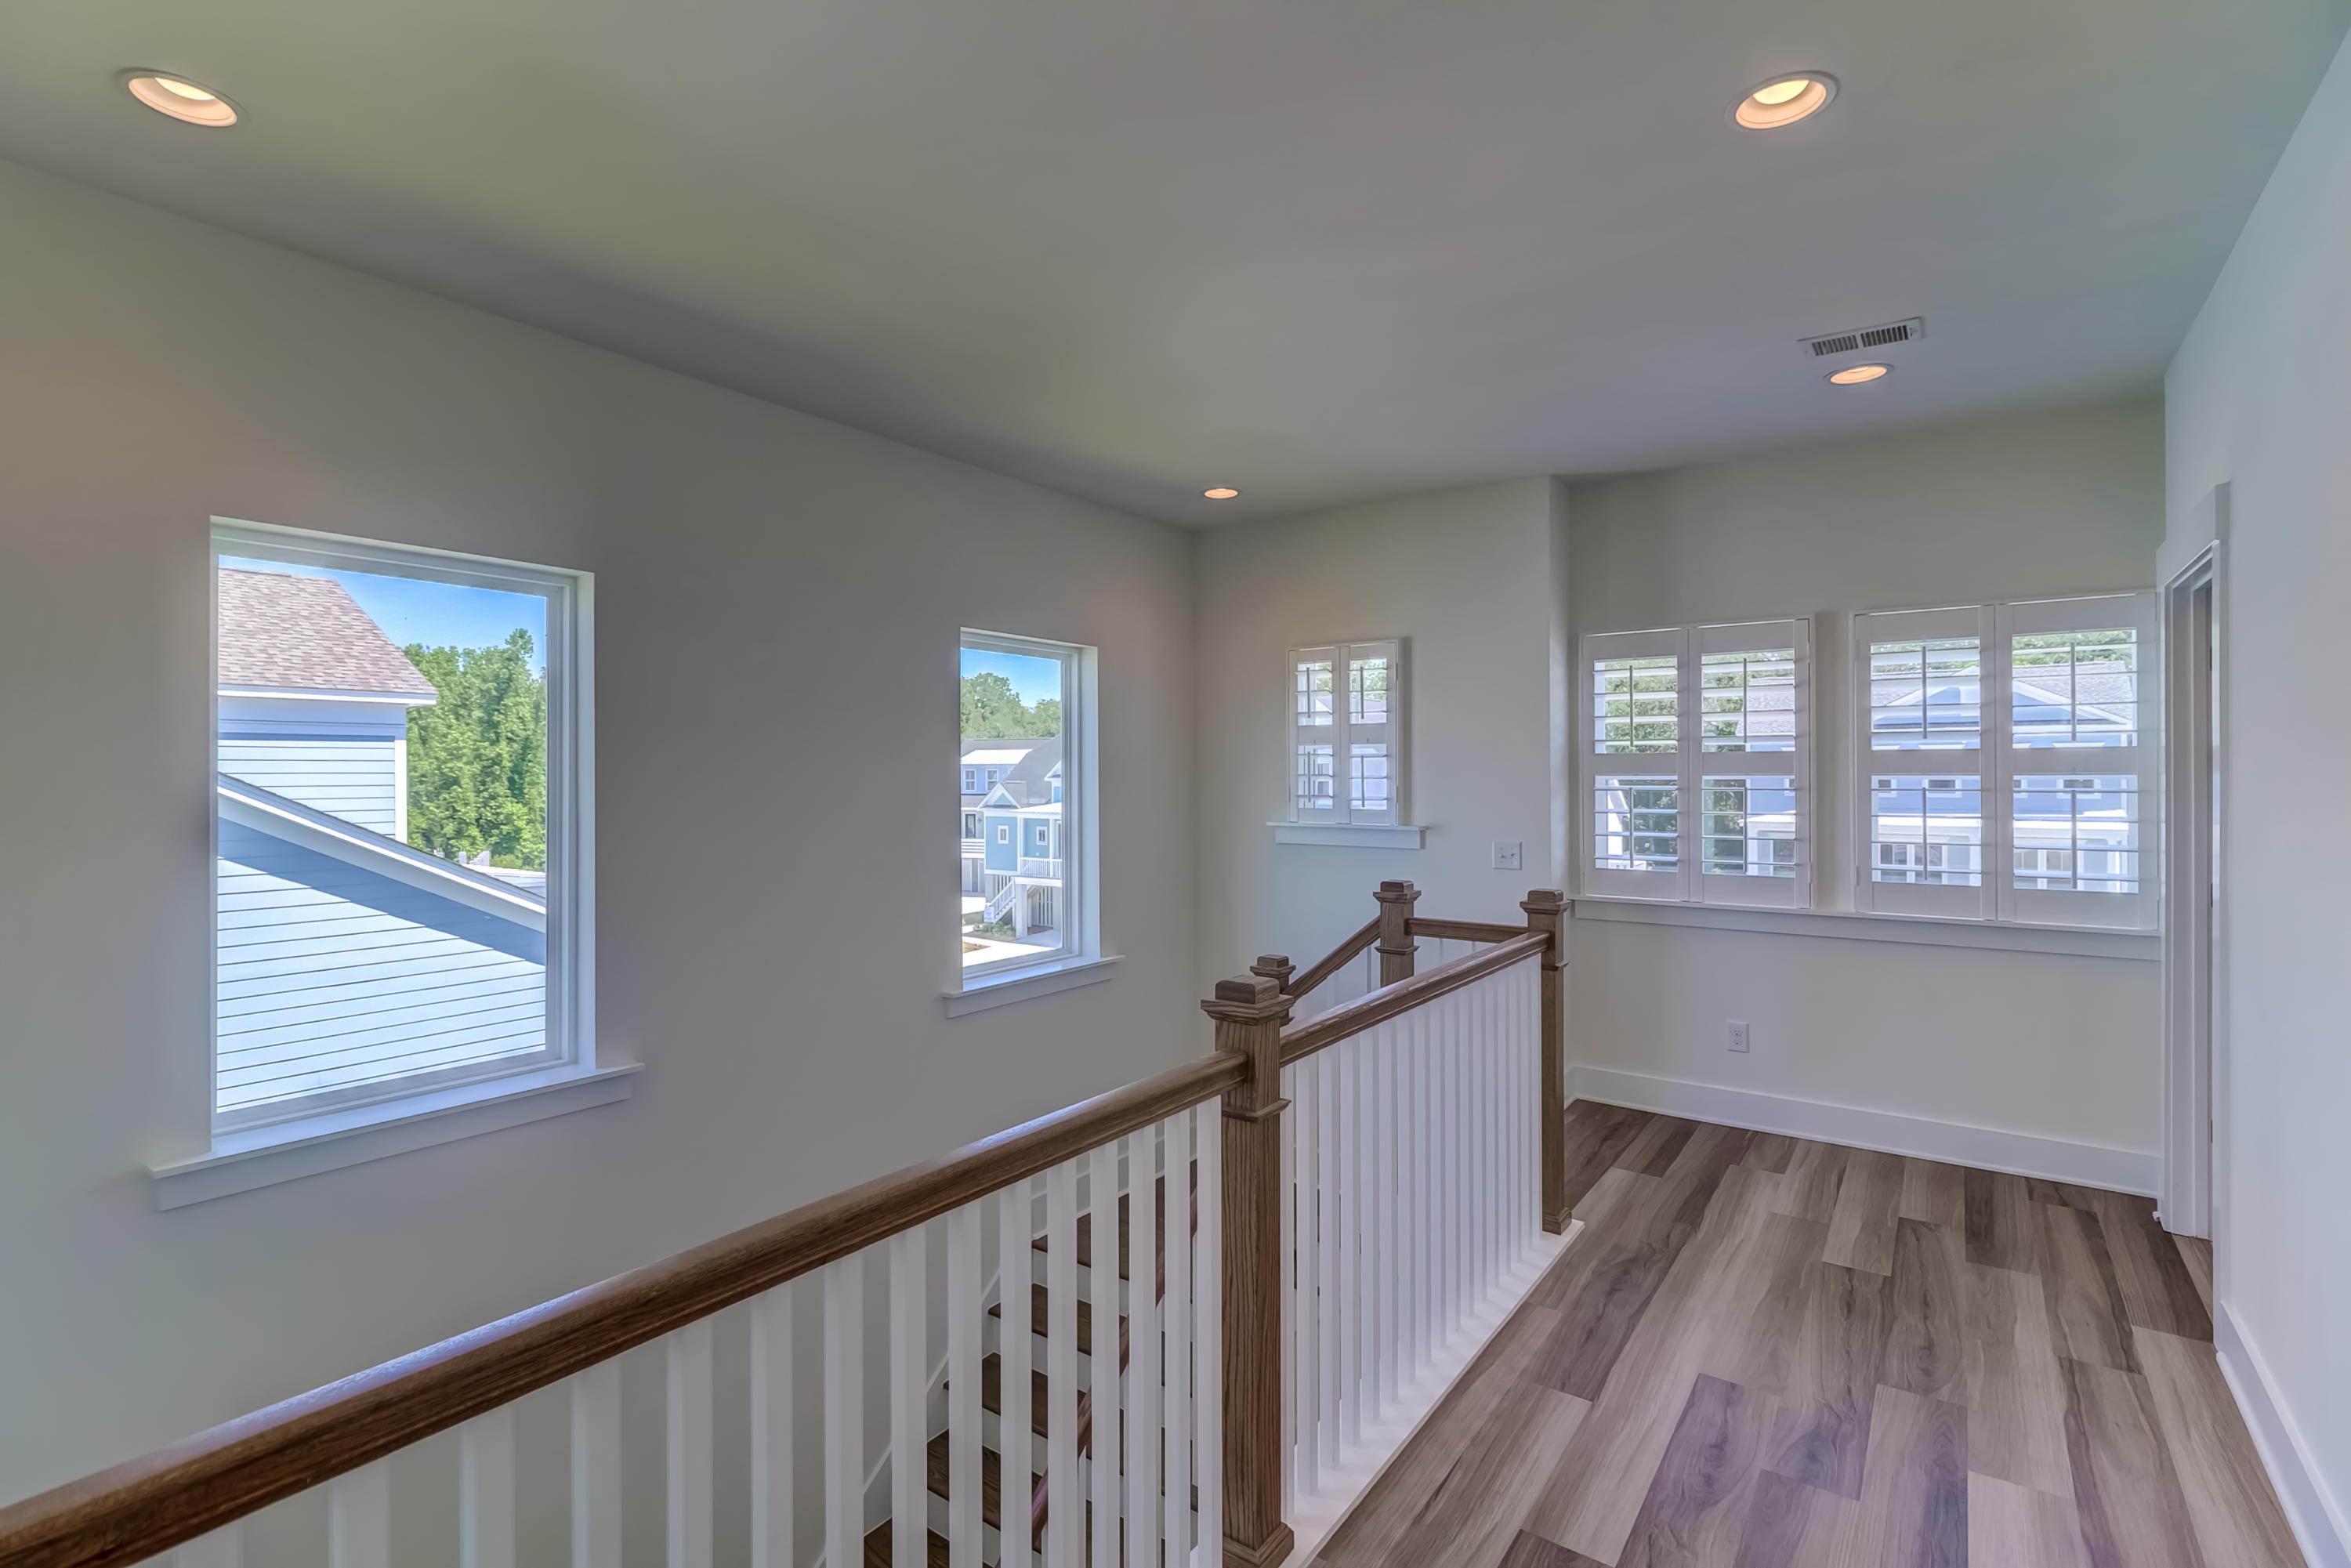 Stratton by the Sound Homes For Sale - 3609 Tidal Flat, Mount Pleasant, SC - 27